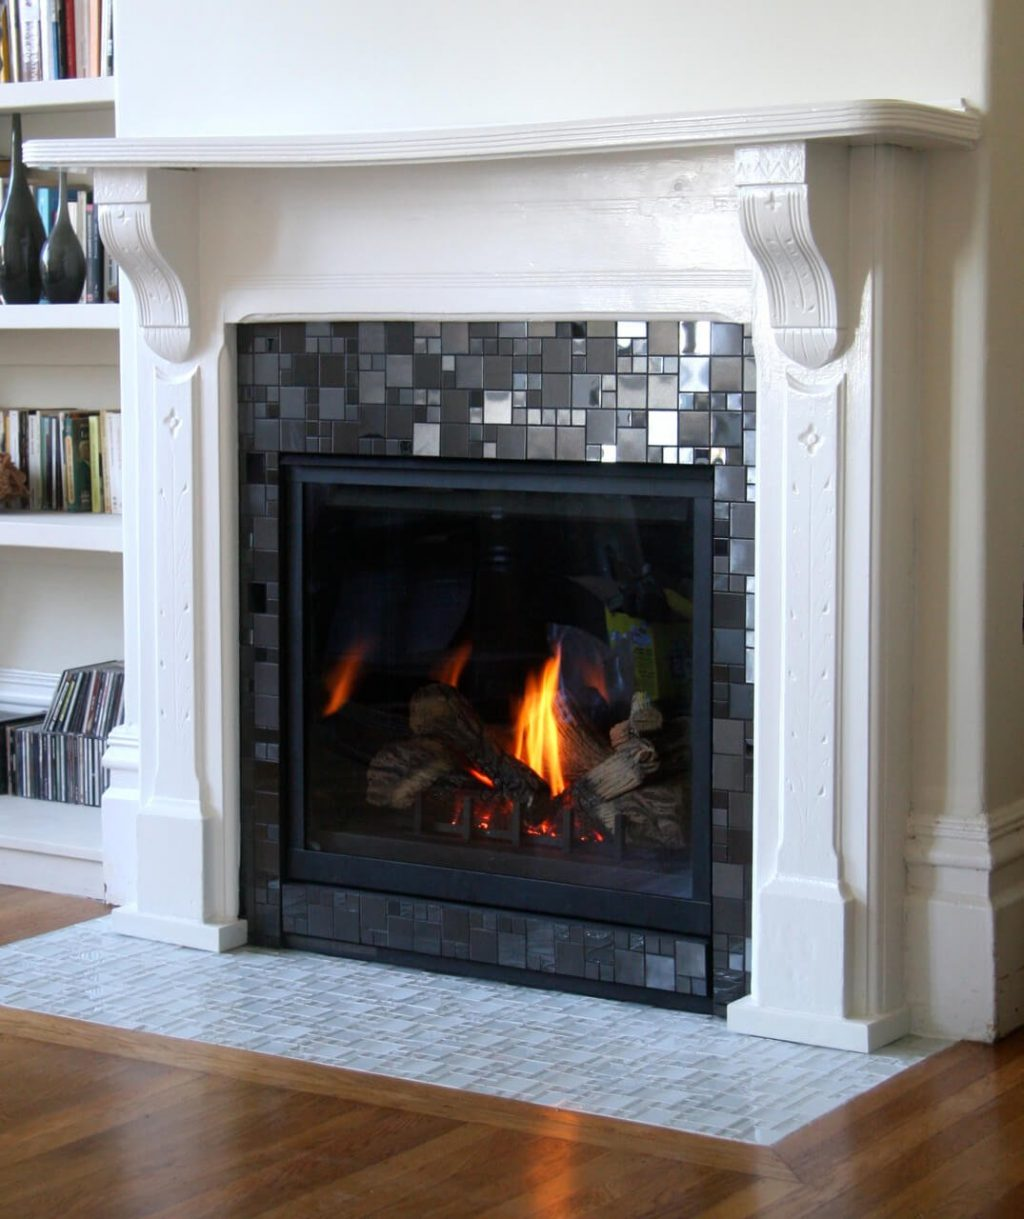 Good Fireplace Tile Ideas Part - 6: Glass Mosaic Fireplace Tiles